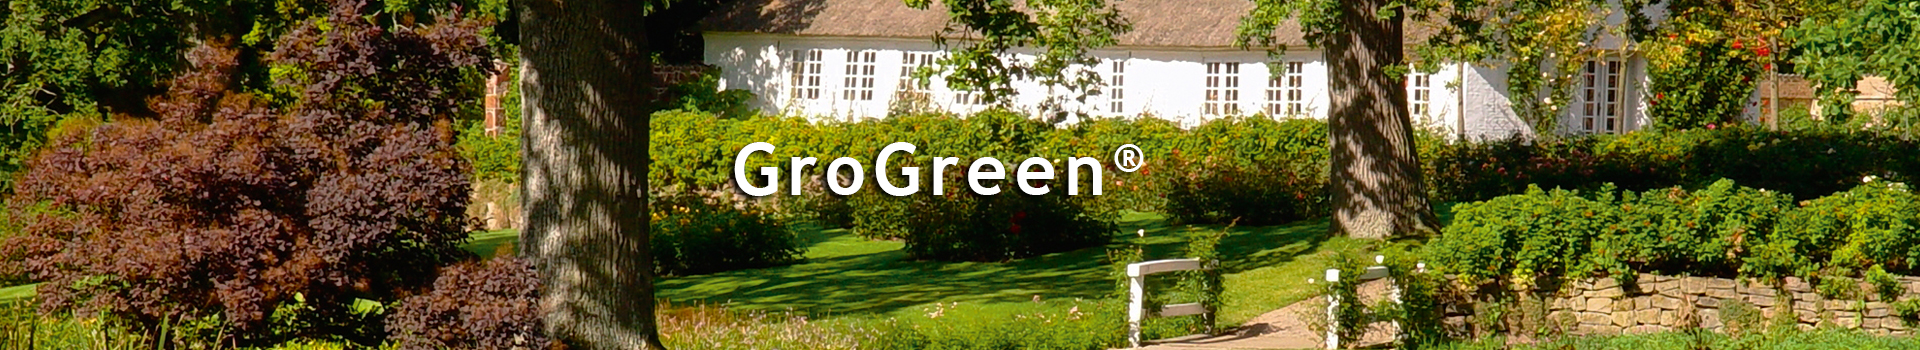 GroGreen_lake002_1920X350